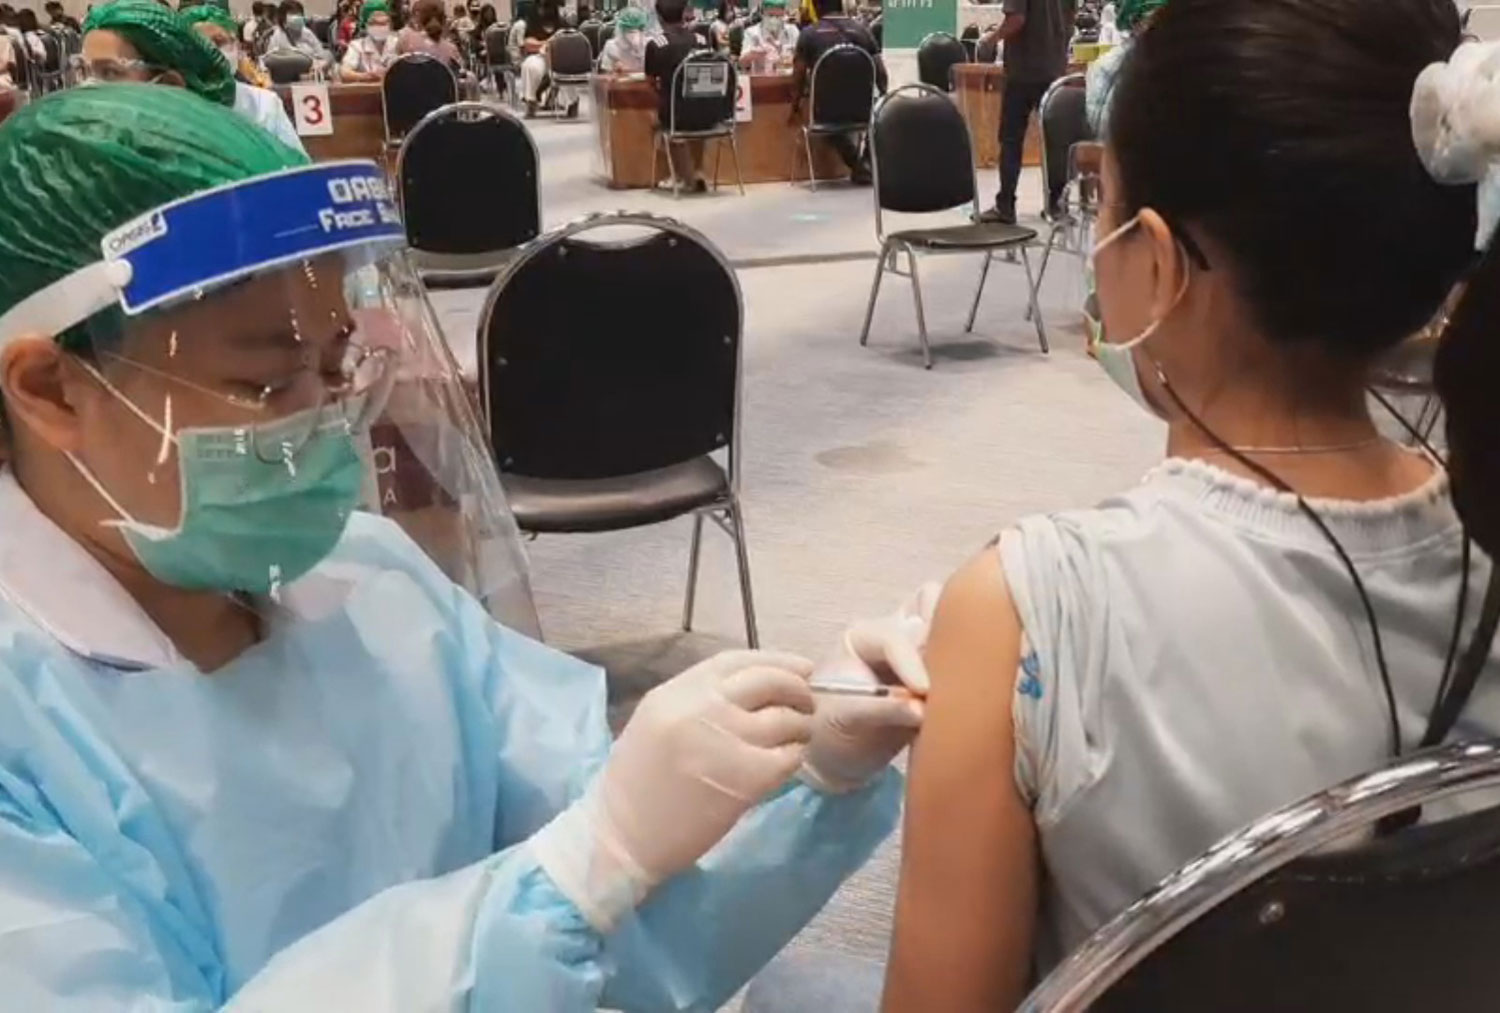 A health official administers a Covid-19 vaccine to a woman at CentralPlaza Nakhon Ratchasima shopping mall in Muang district, Nakhon Ratchasima on Sunday. (Photo: Prasit Tangprasert)